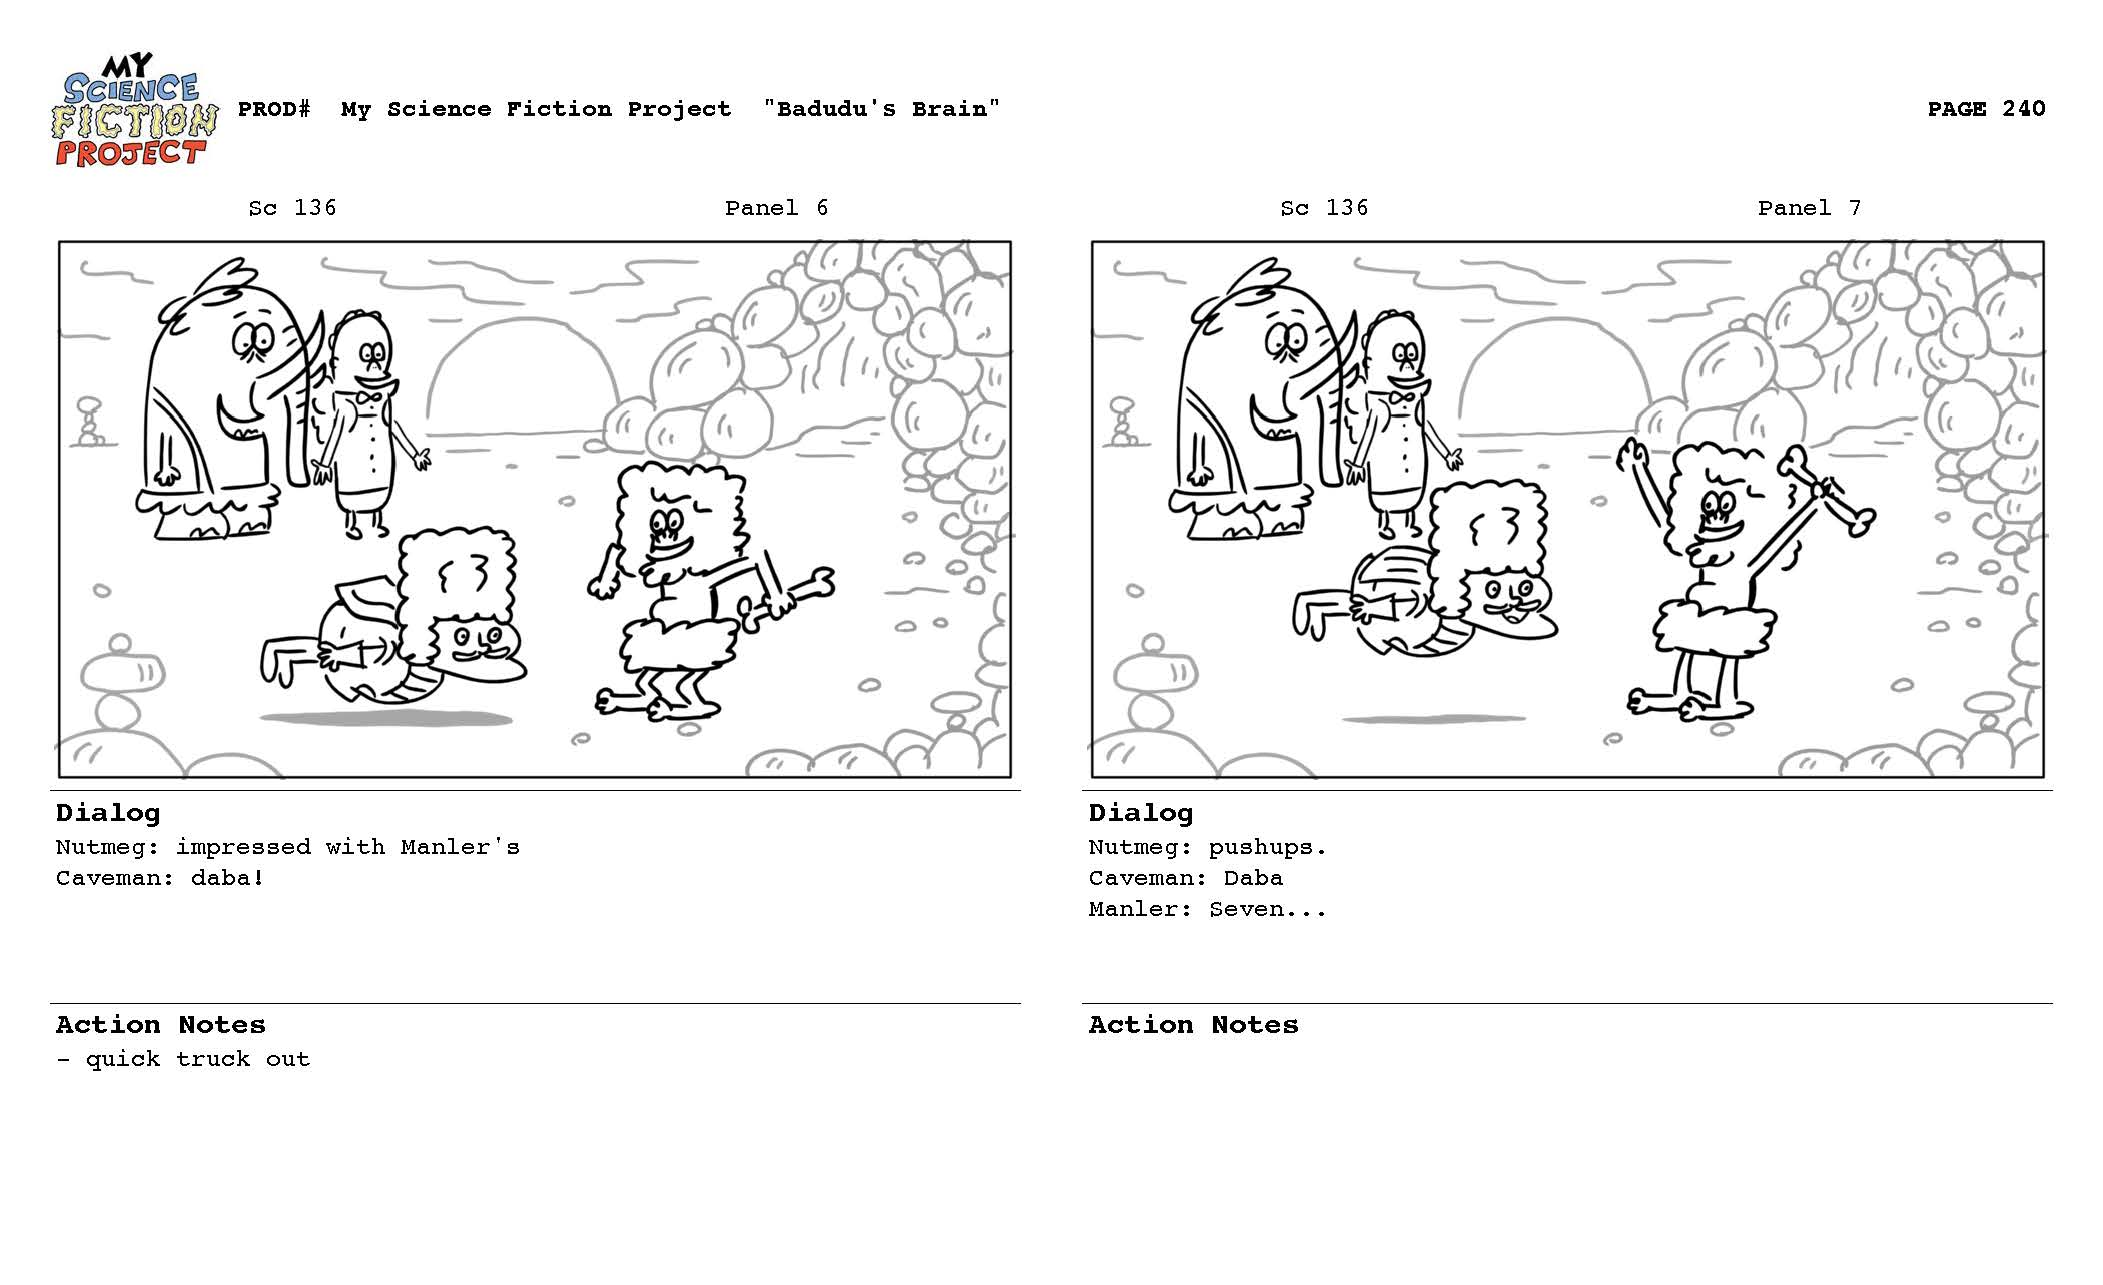 My_Science_Fiction_Project_SB_083112_reduced_Page_240.jpg